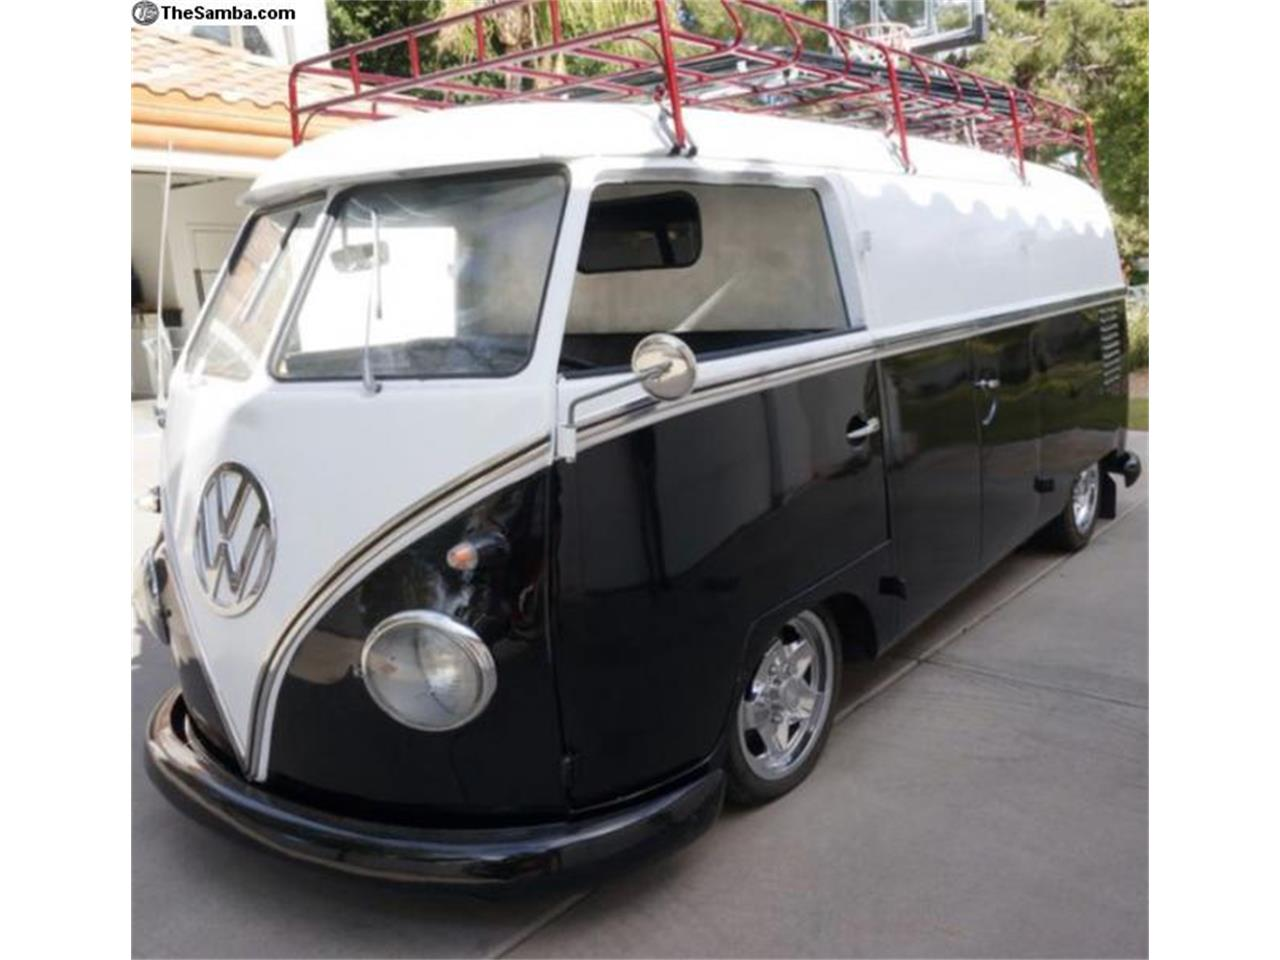 1961 Volkswagen Van for sale in Tempe, AZ – photo 2